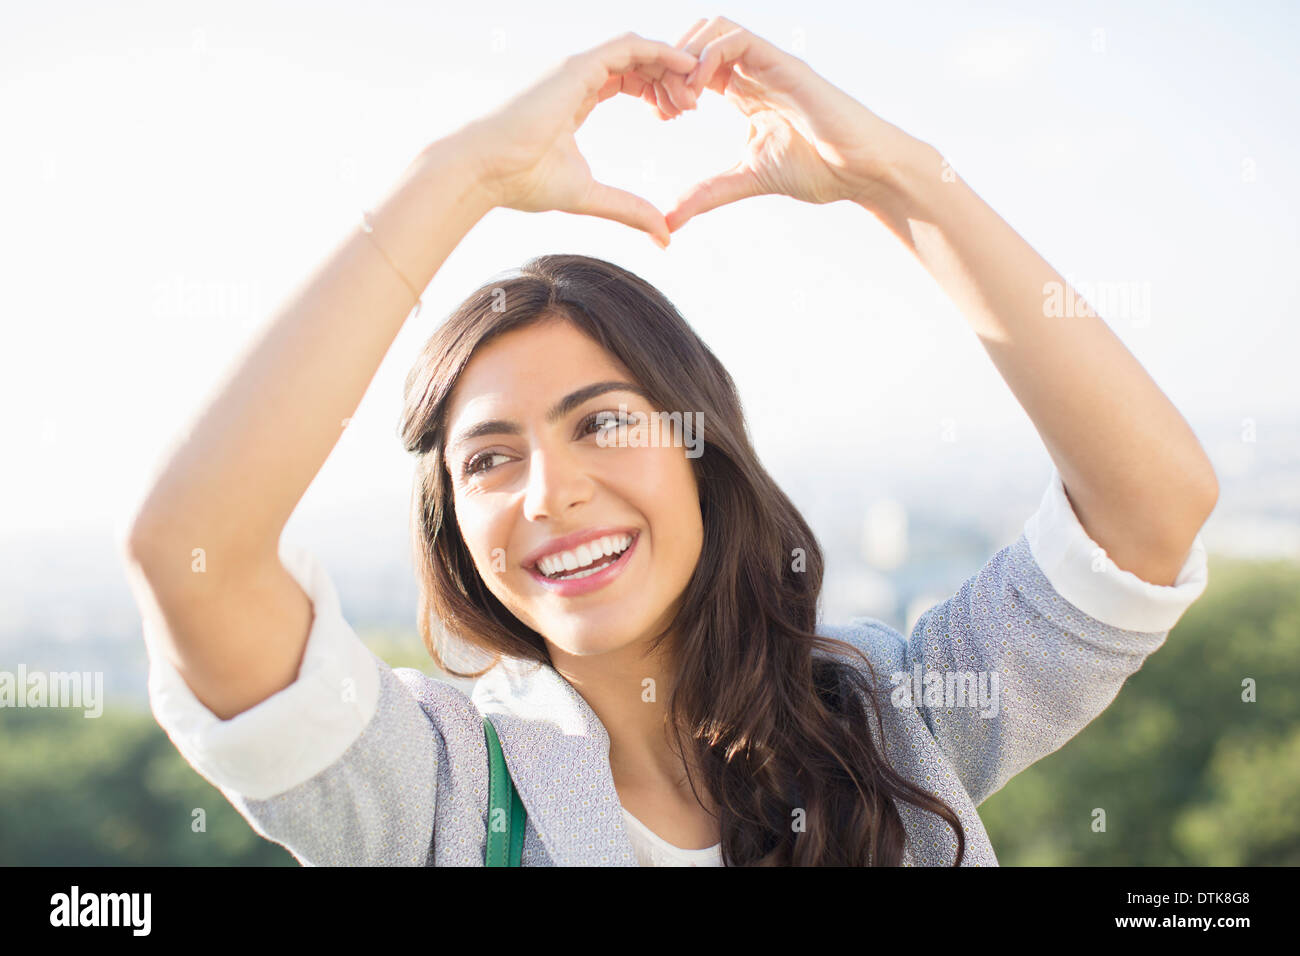 Woman making heart-shape with hands outdoors - Stock Image